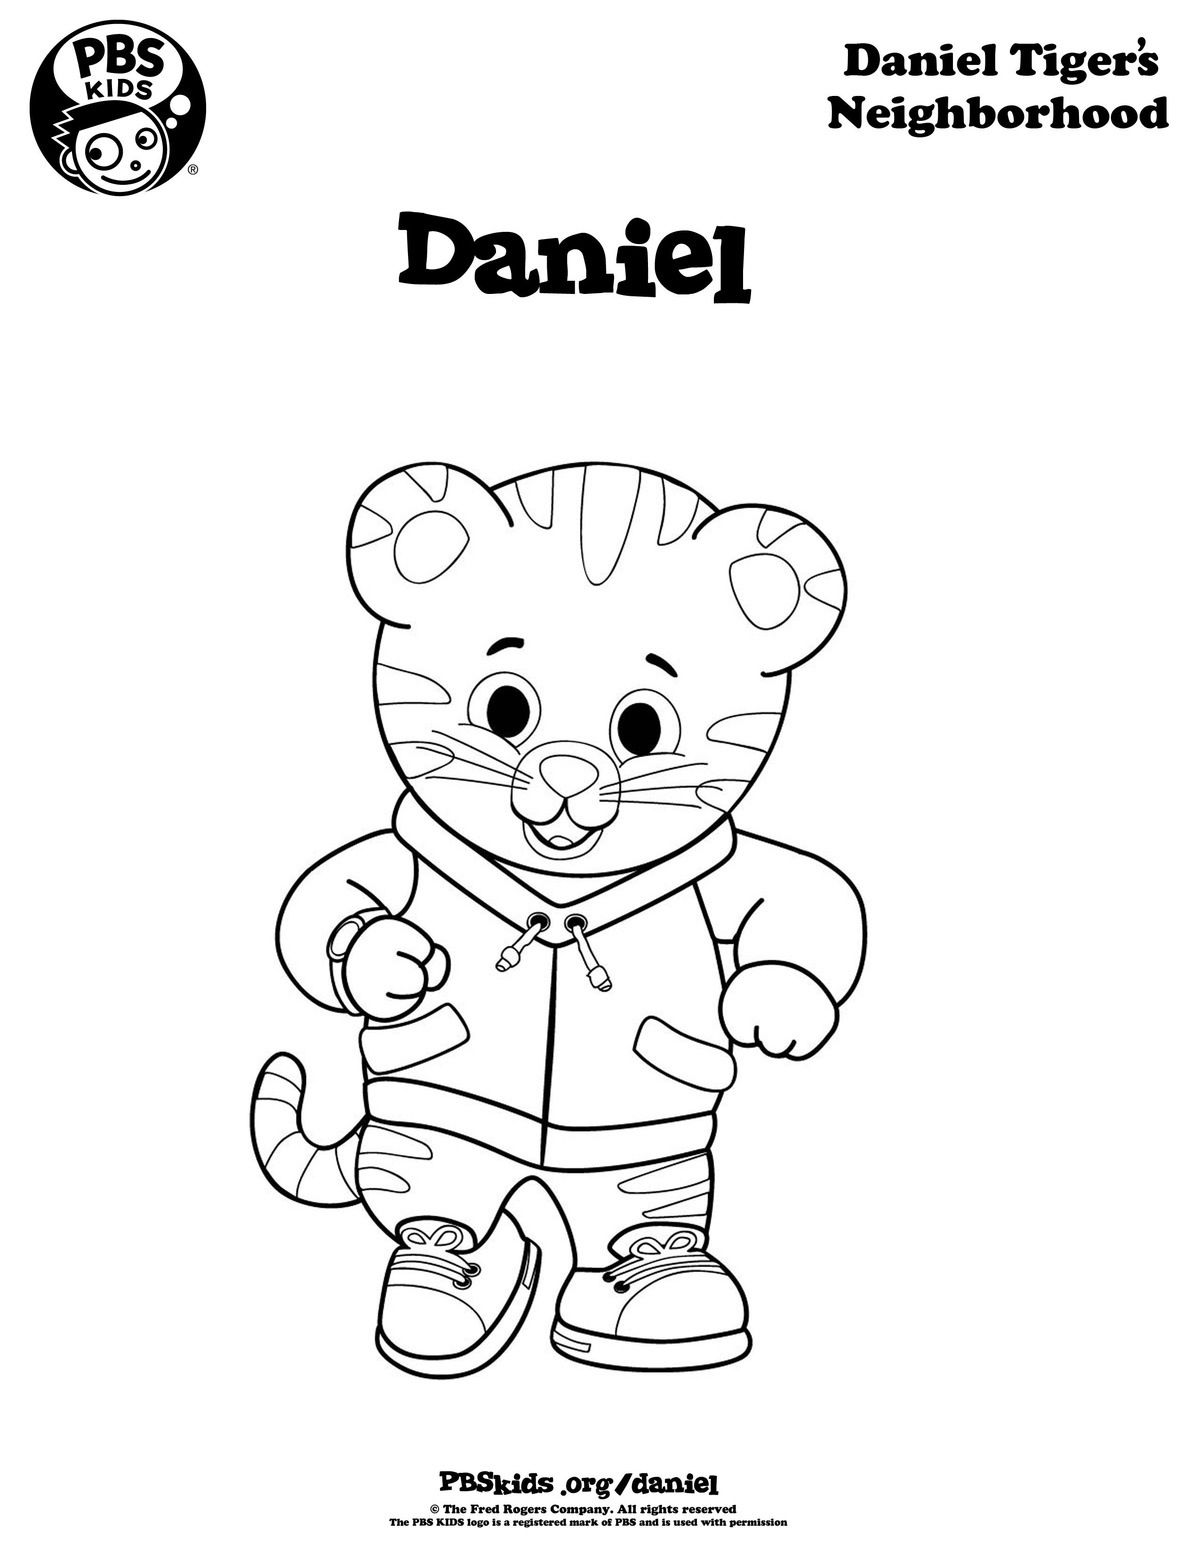 Daniel Tiger coloring page. Coloring pages are a great campsite ...